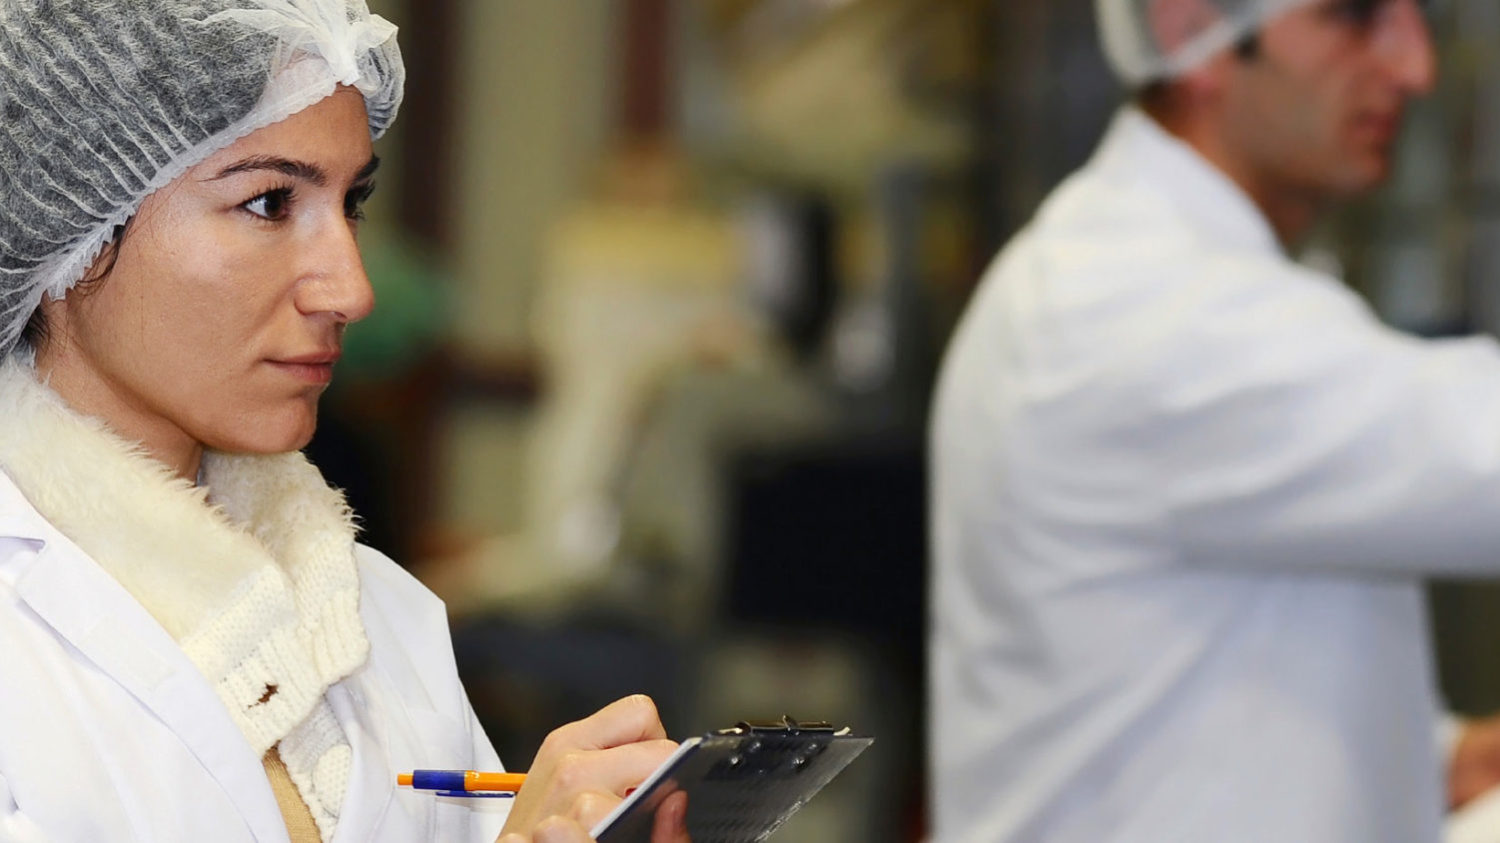 Workers in lab coats and hair nets take notes on clipboards